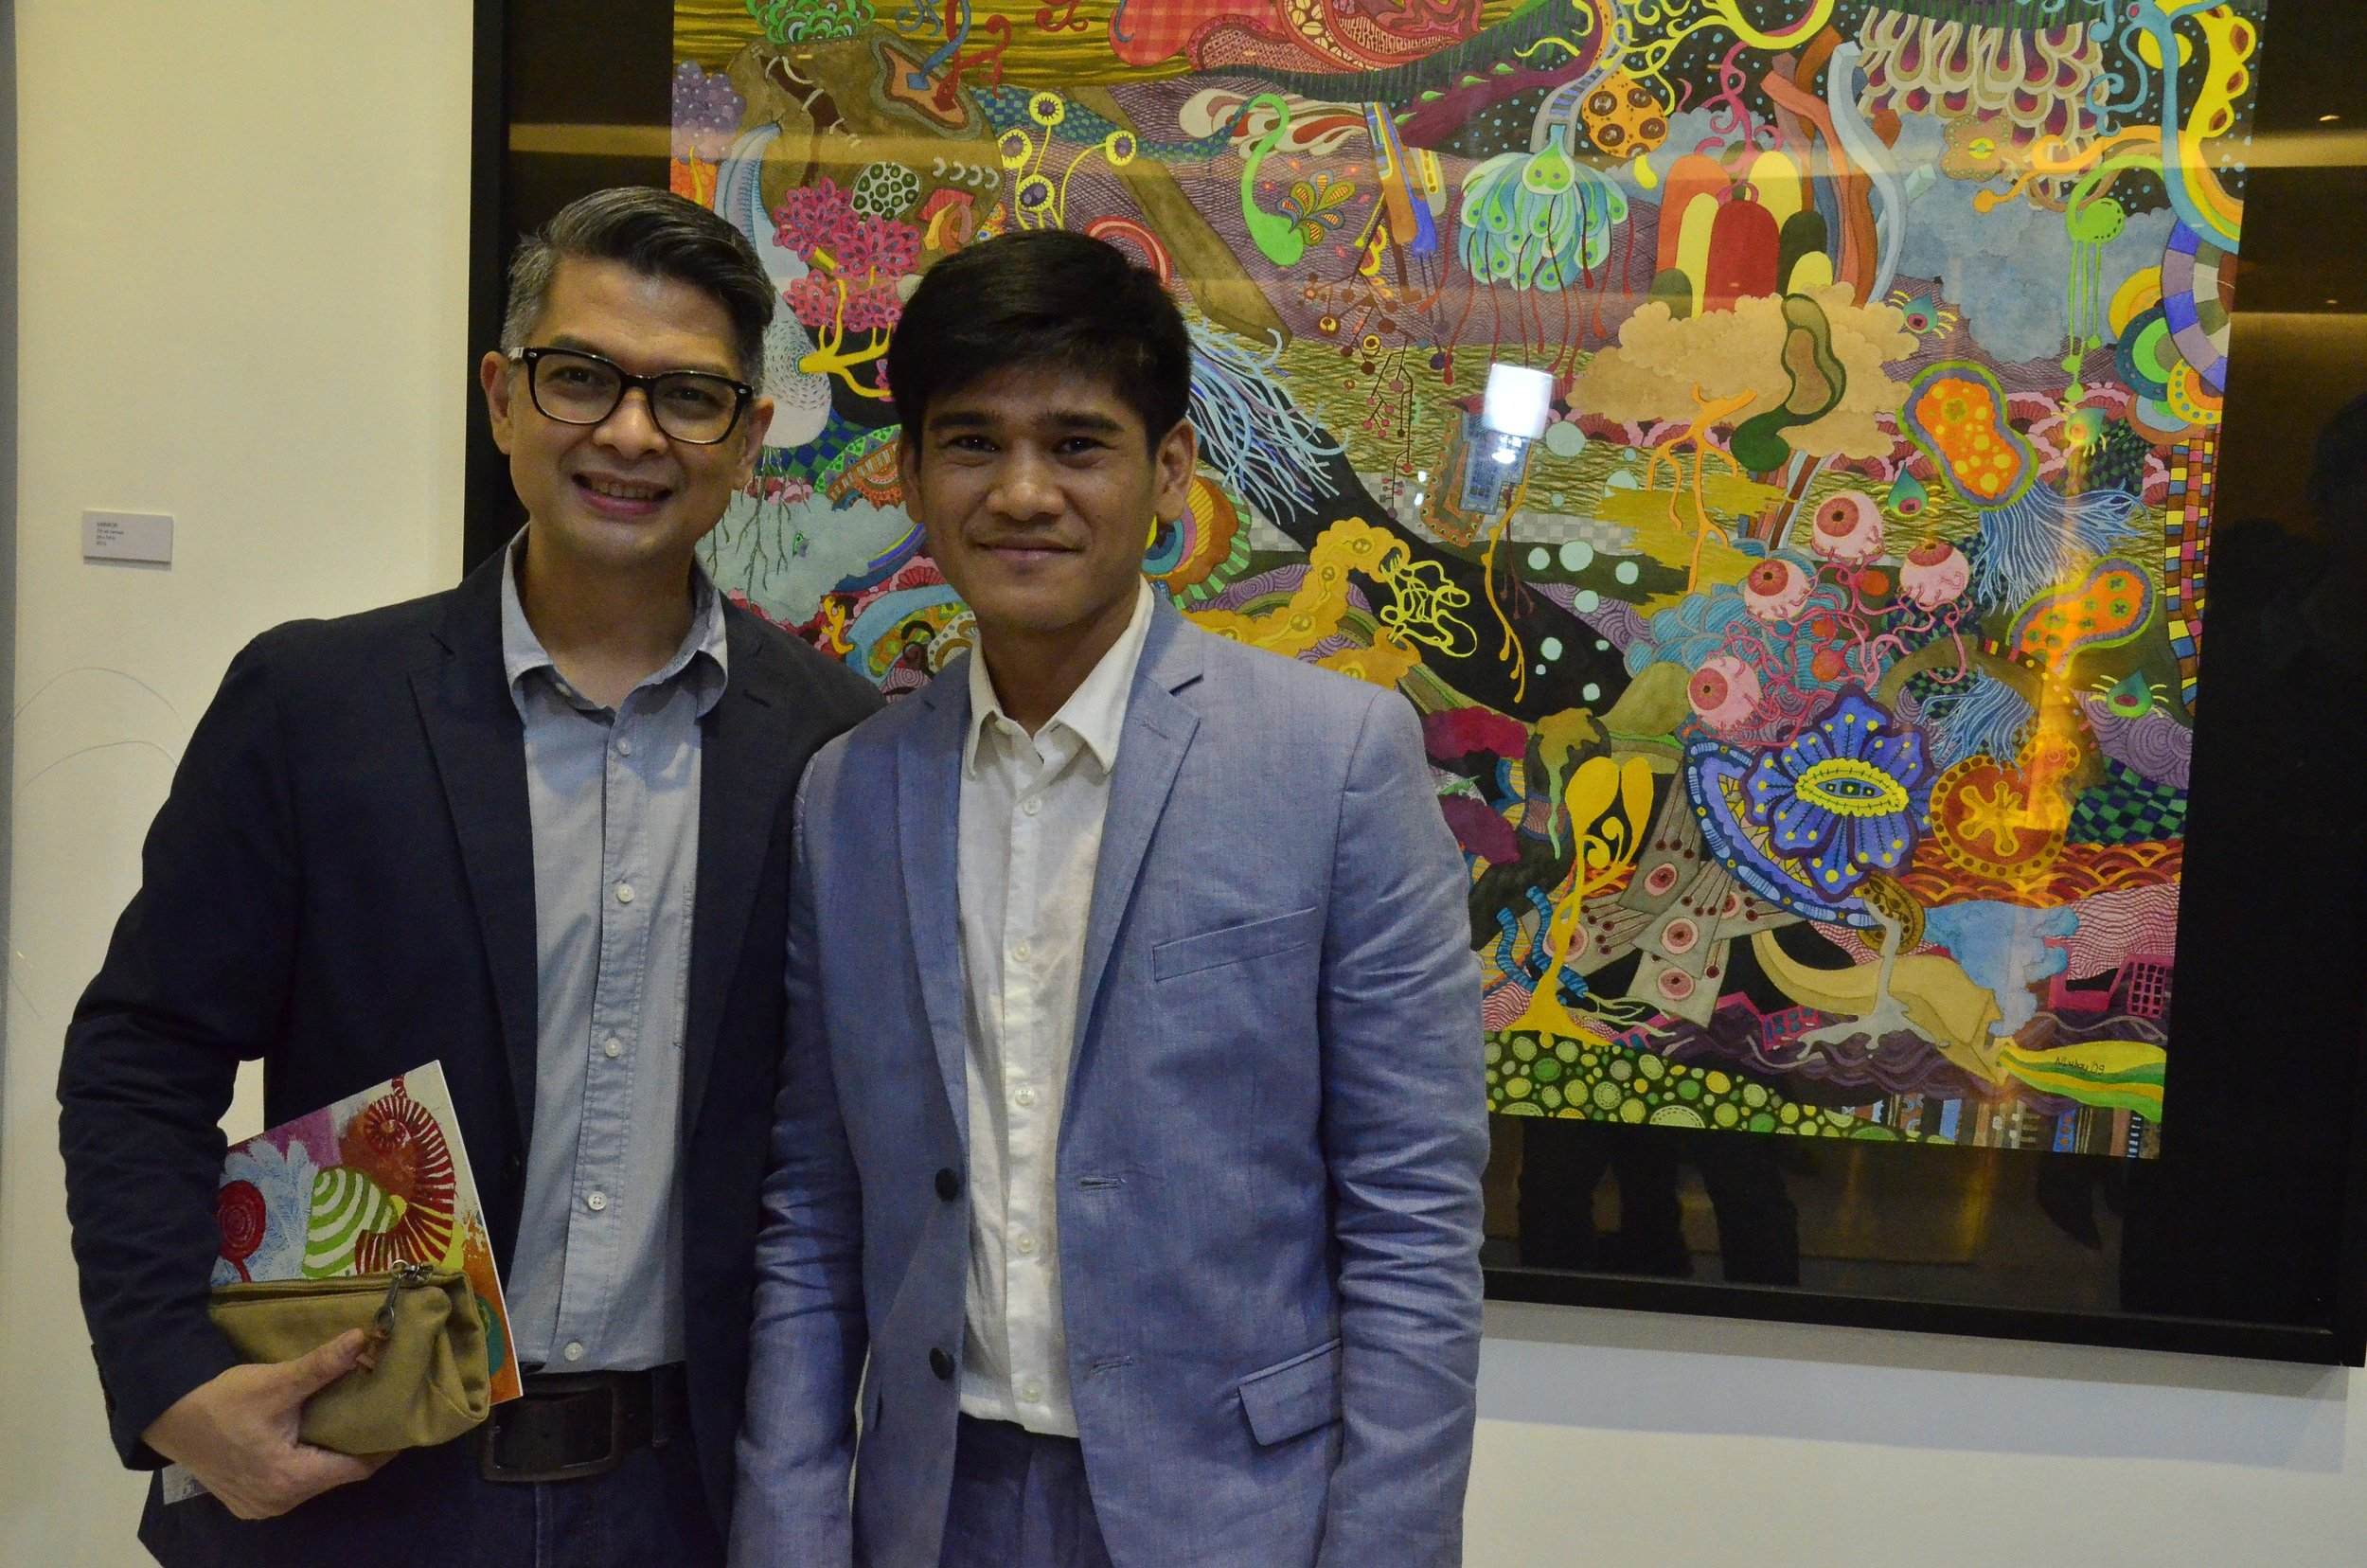 With Guest of Honor Albert Cuadrante of Greenwich Pizza Philippines